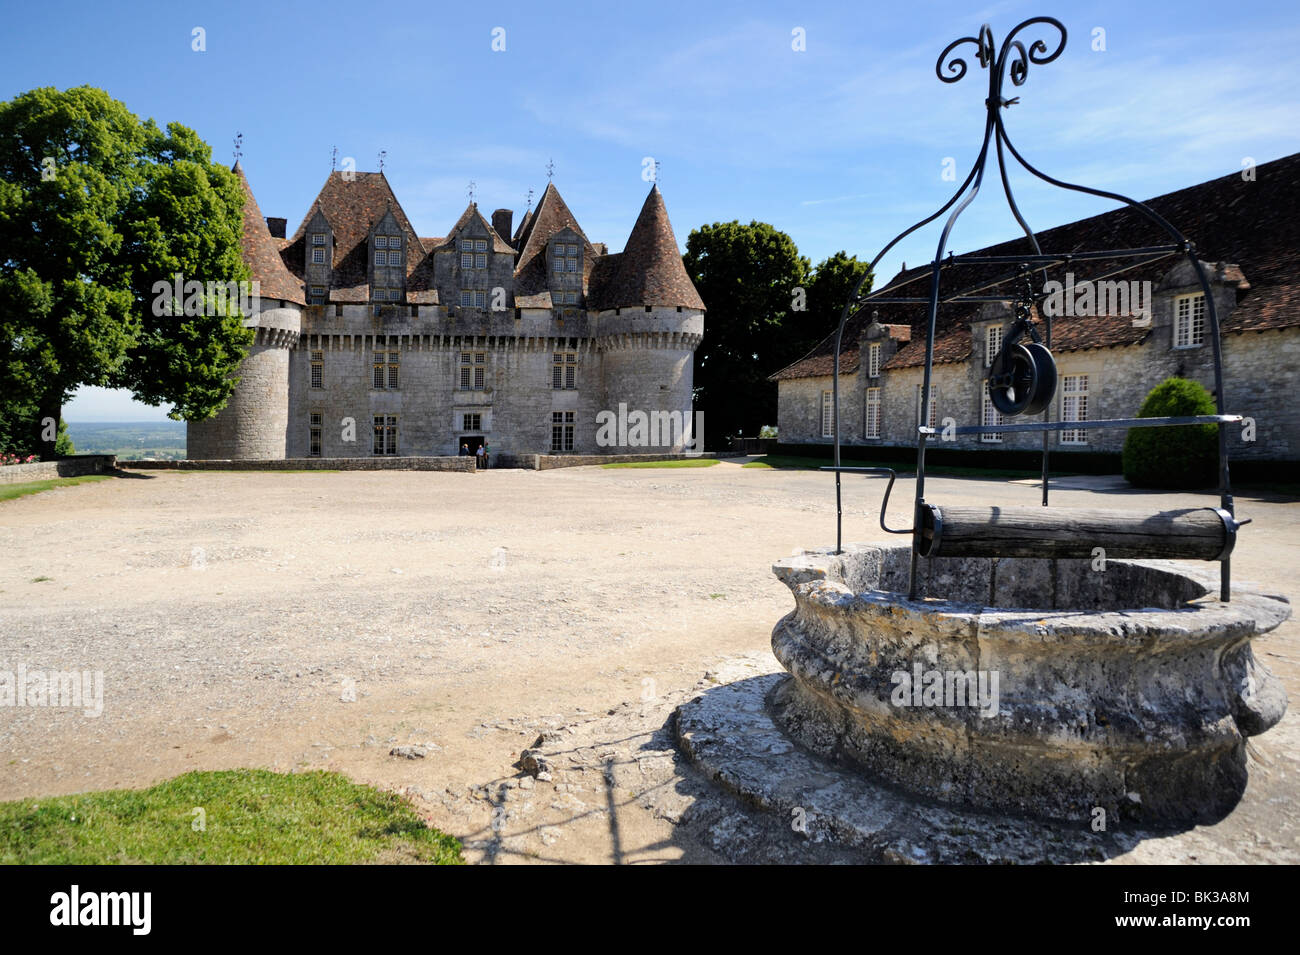 Old well at Chateau de Monbazillac, Monbazillac, Dordogne, France, Europe - Stock Image